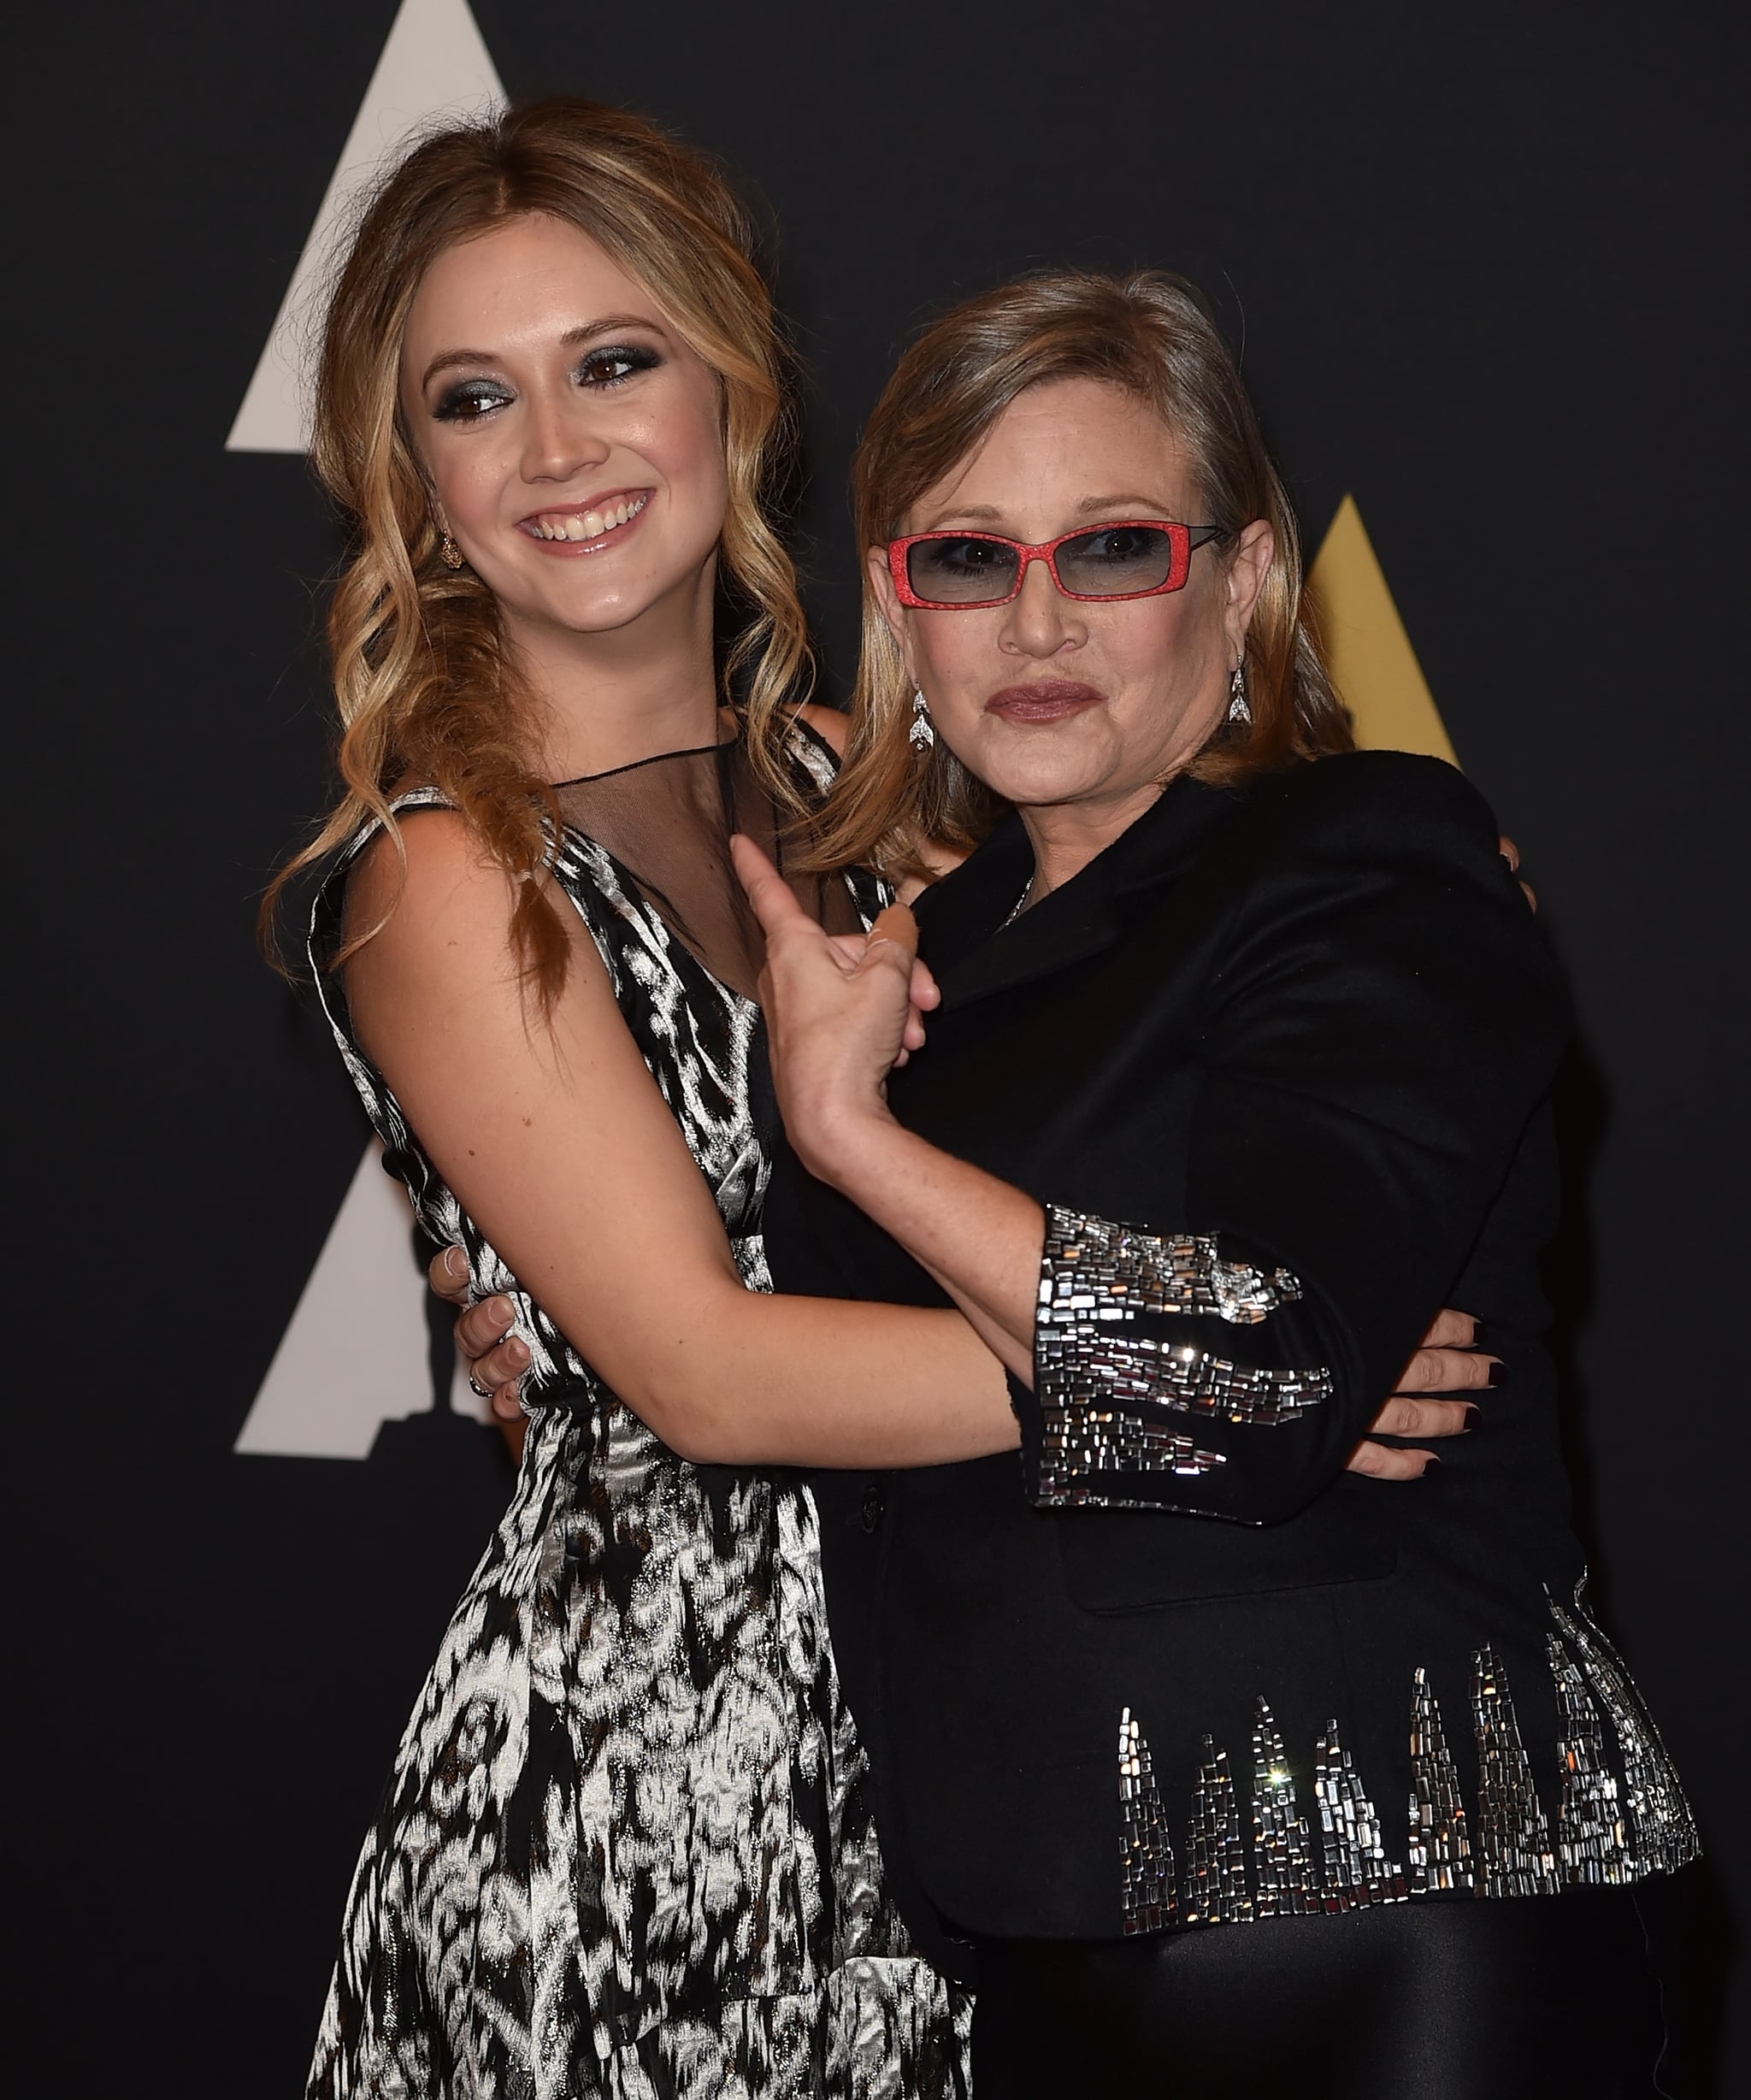 HOLLYWOOD, CA - NOVEMBER 14:  Actresses Carrie Fisher (L) and Billie Catherine Lourd attend the Academy of Motion Picture Arts and Sciences' 7th annual Governors Awards at The Ray Dolby Ballroom at Hollywood & Highland Centre on November 14, 2015 in Hollywood, California.  (Photo by Kevin Winter/Getty Images)